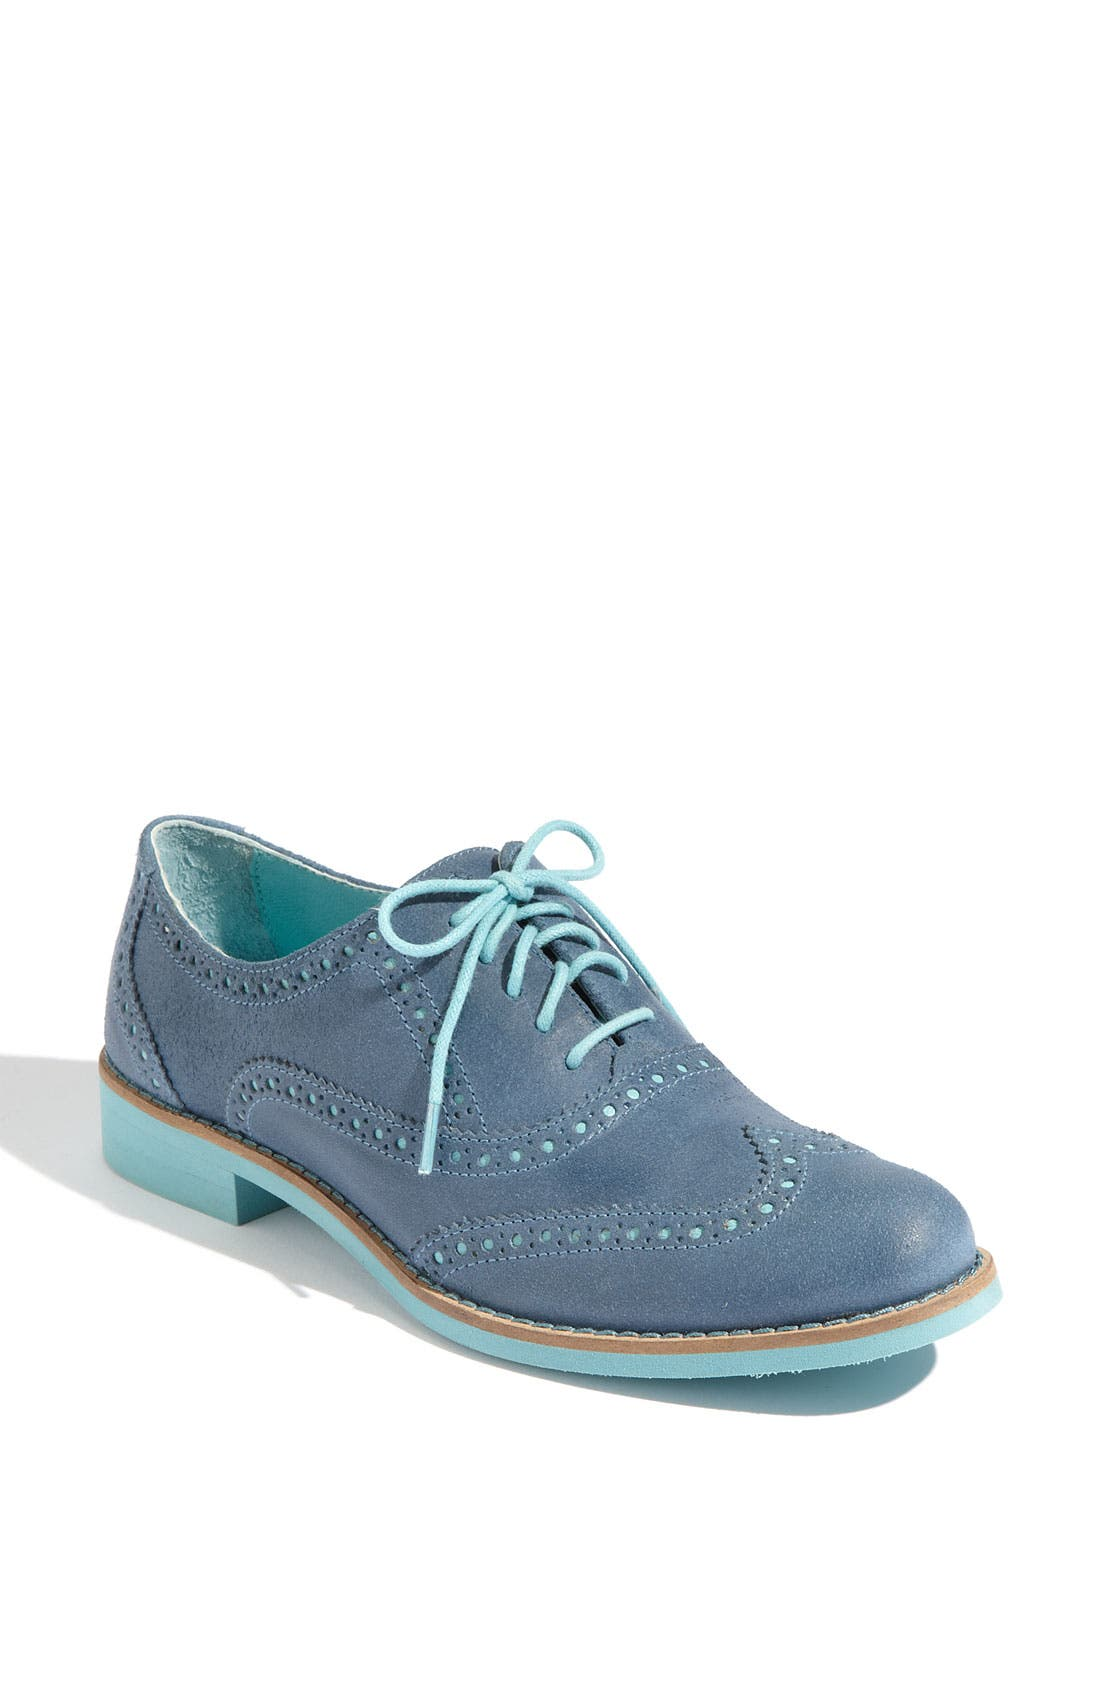 Alternate Image 1 Selected - Cole Haan 'Alisa' Oxford